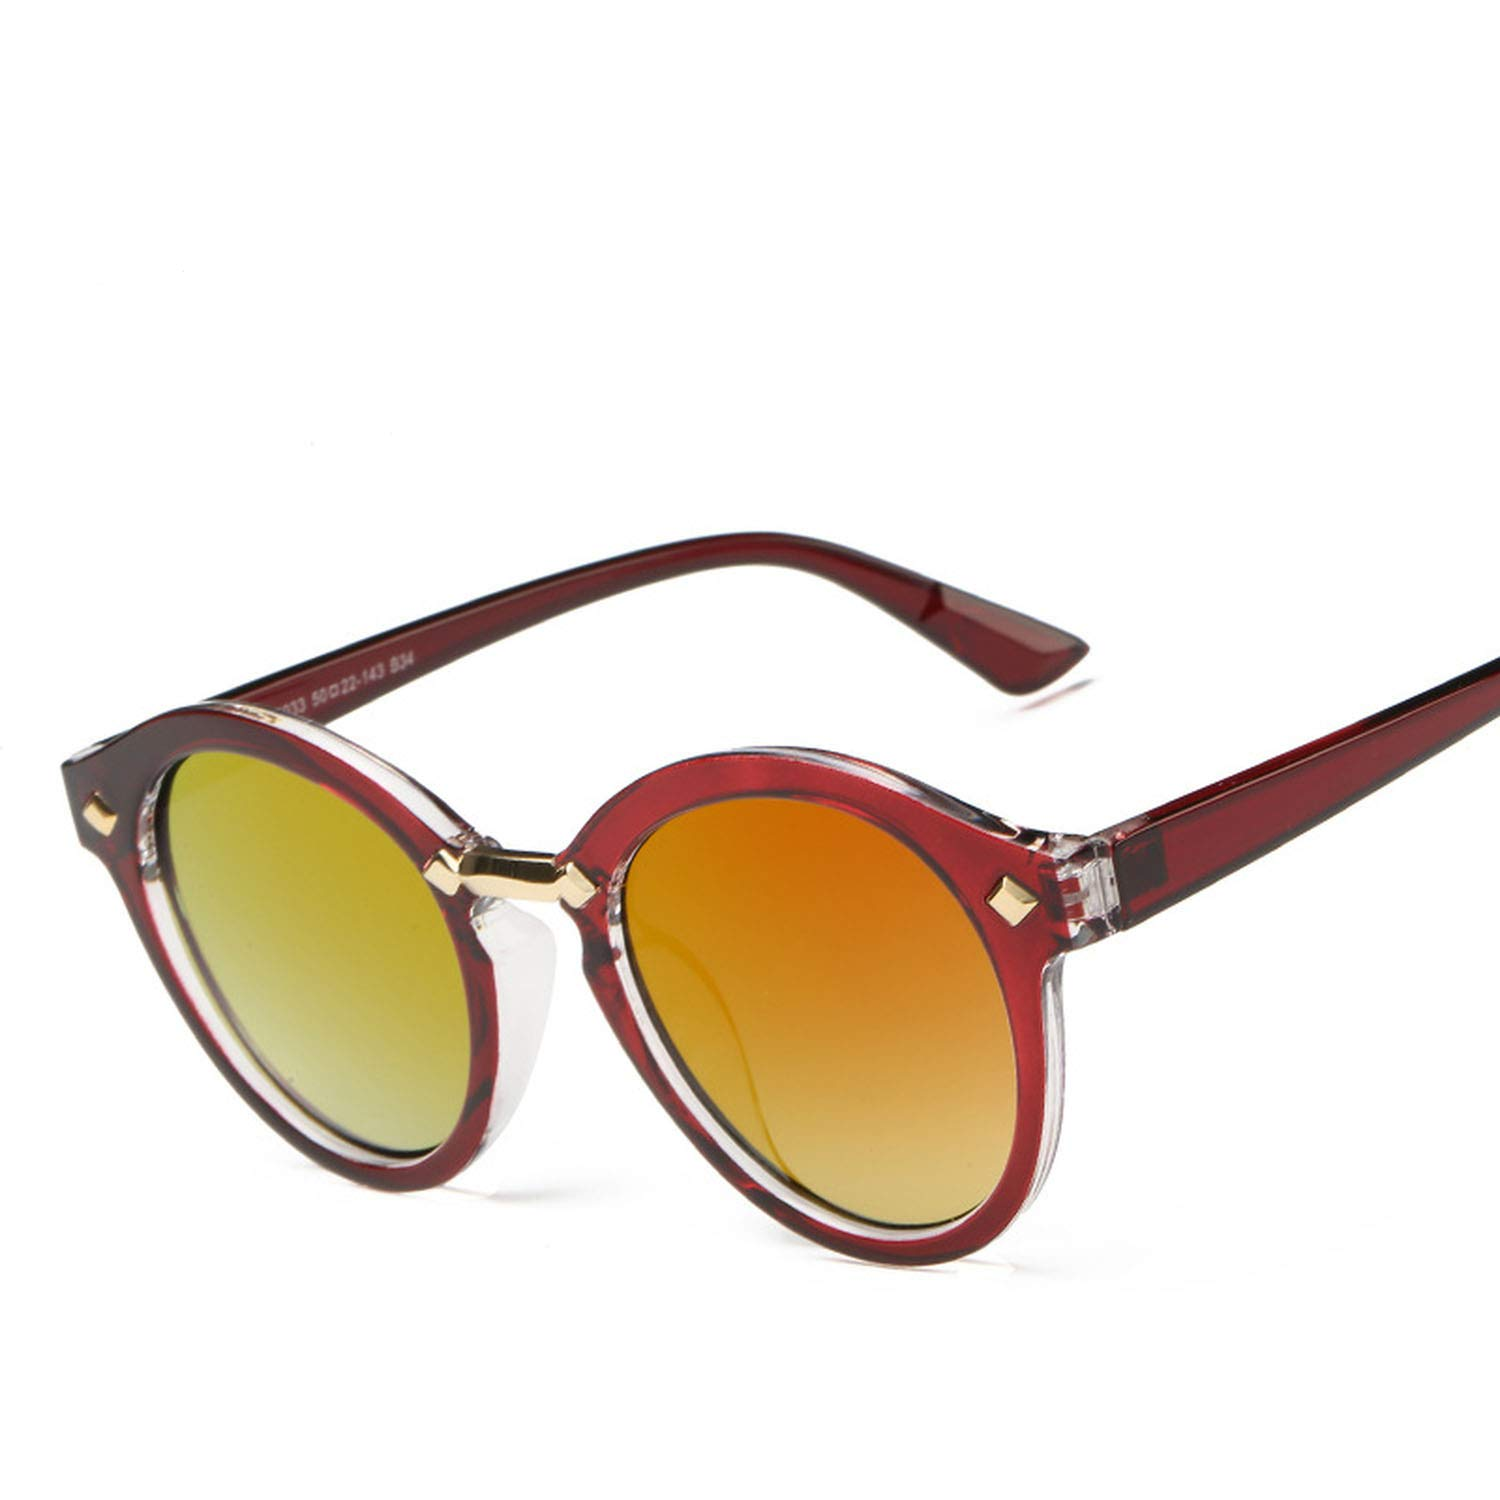 9c0d6c1fa64 Amazon.com  new 96033 sunglasses retro men and women frog mirror dazzling  color sunglasses 516  Clothing